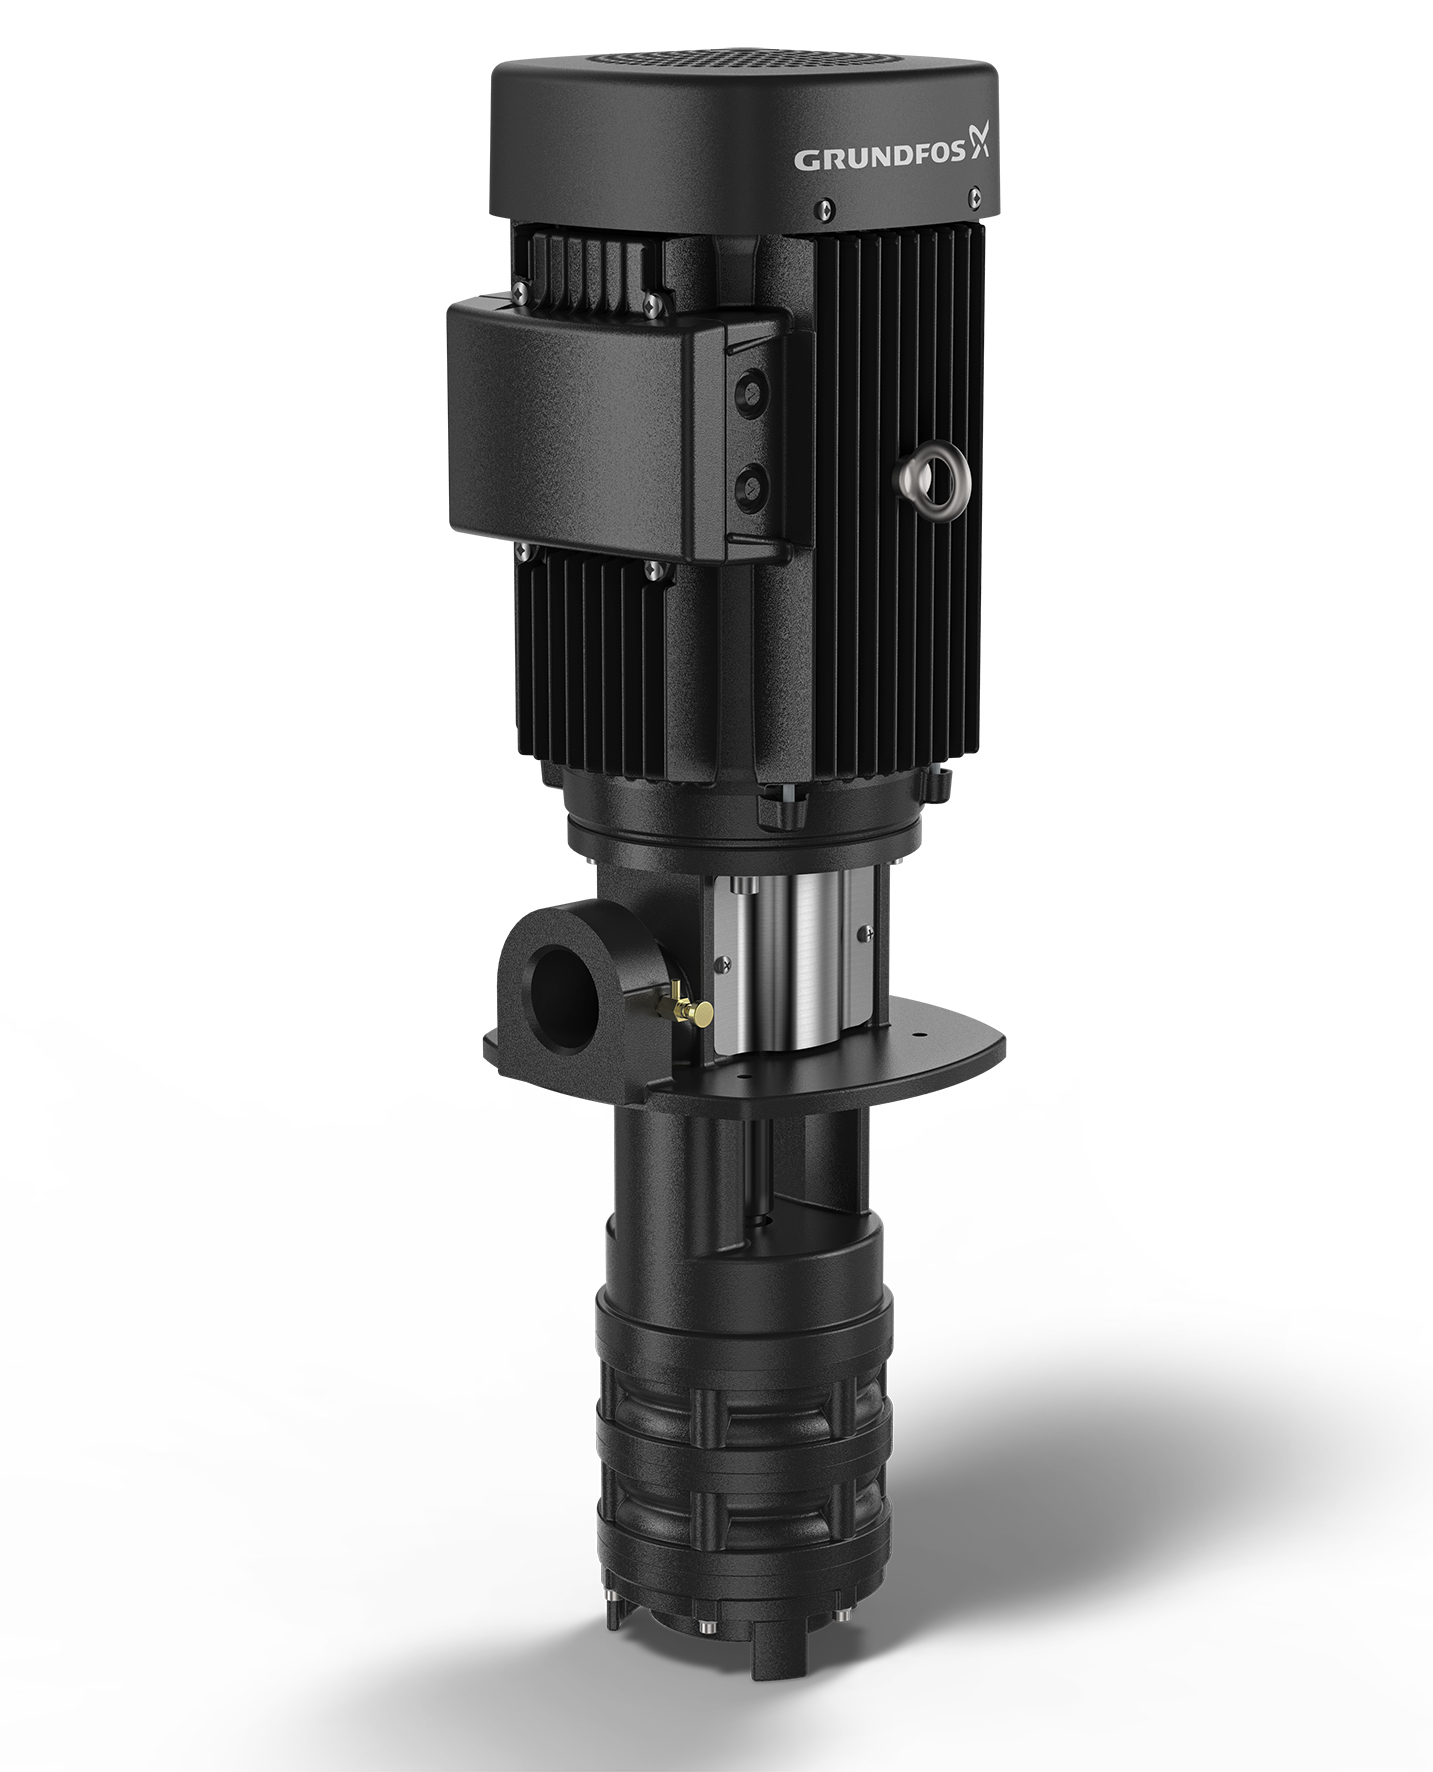 Grundfos MTD - Filter Pumps in Industrial Raw Water Treatment